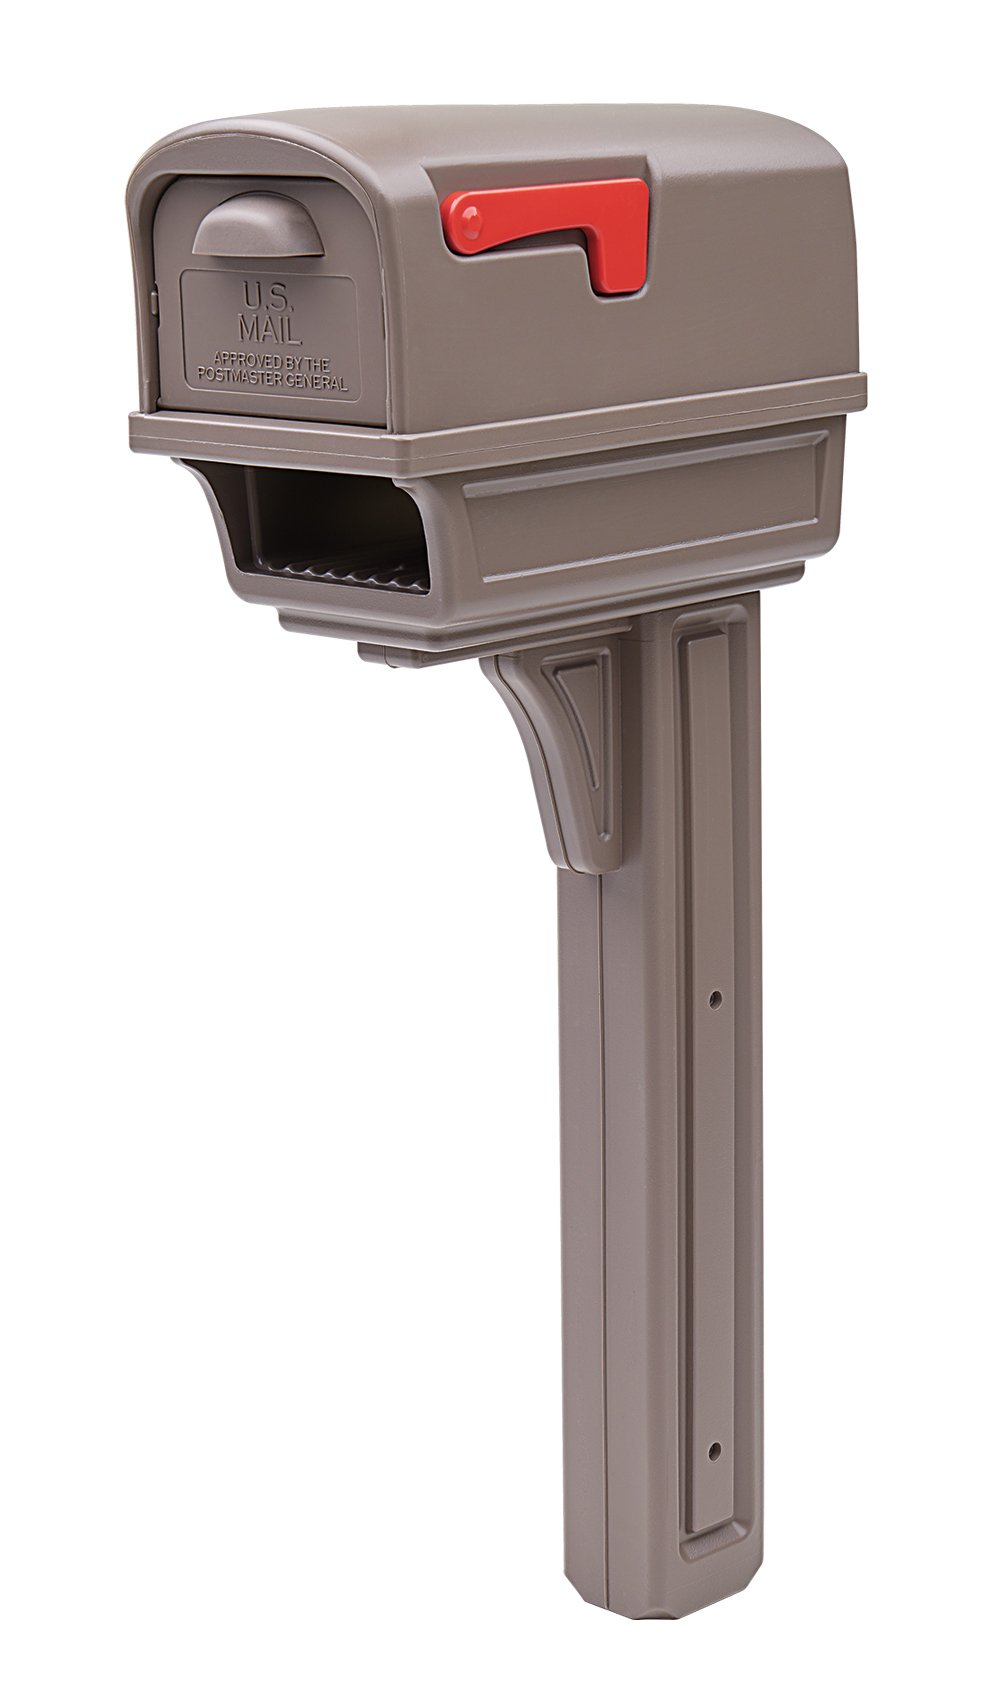 Gibraltar Mailboxes Gentry Large Capacity Double-Walled Plastic Mocha, All-In-One Mailbox & Post Combo Kit, GGC1M0000